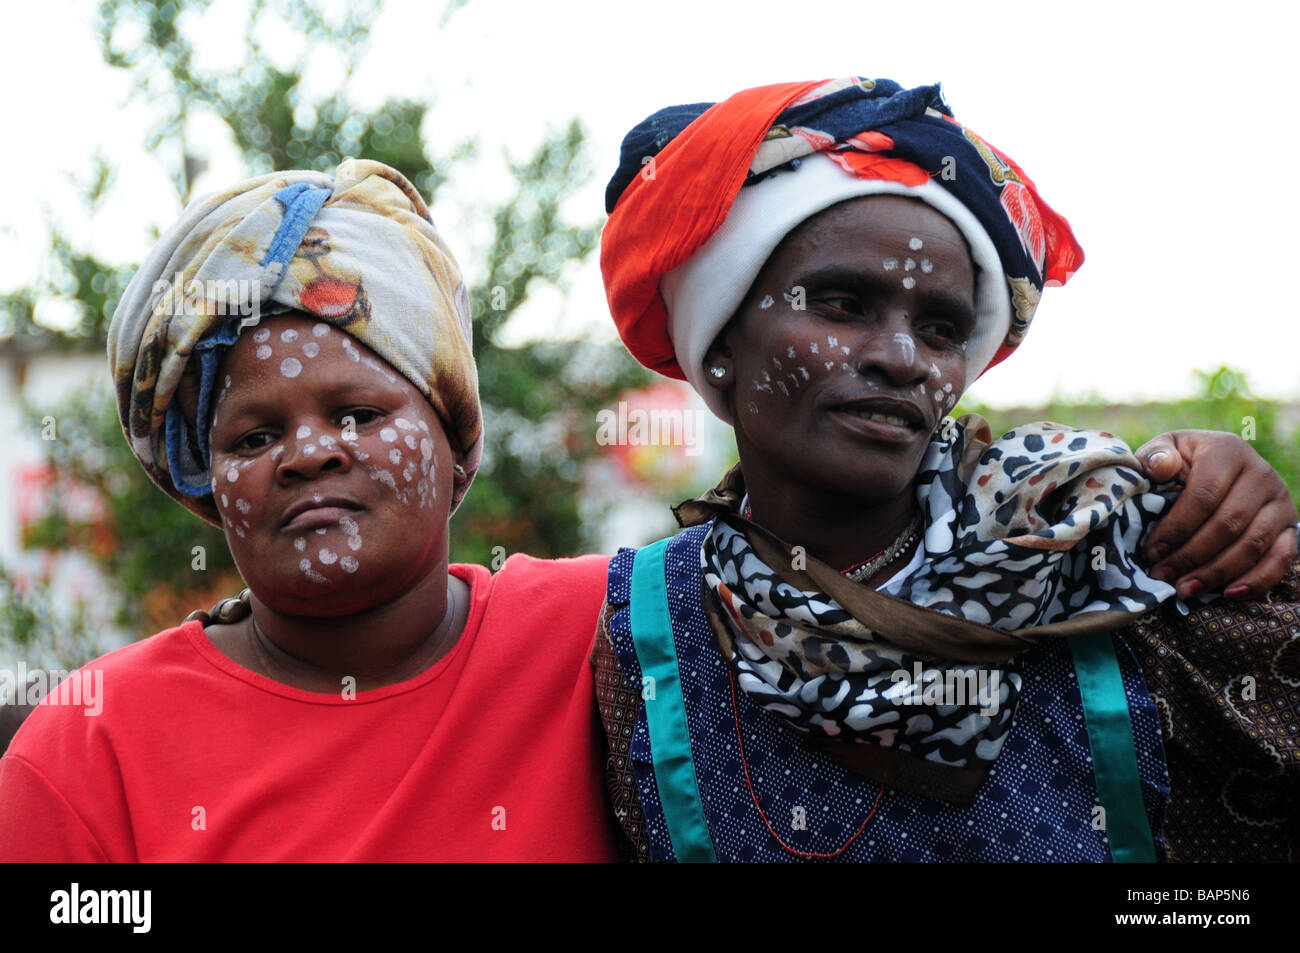 township south africa tribal women painted faces - Stock Image